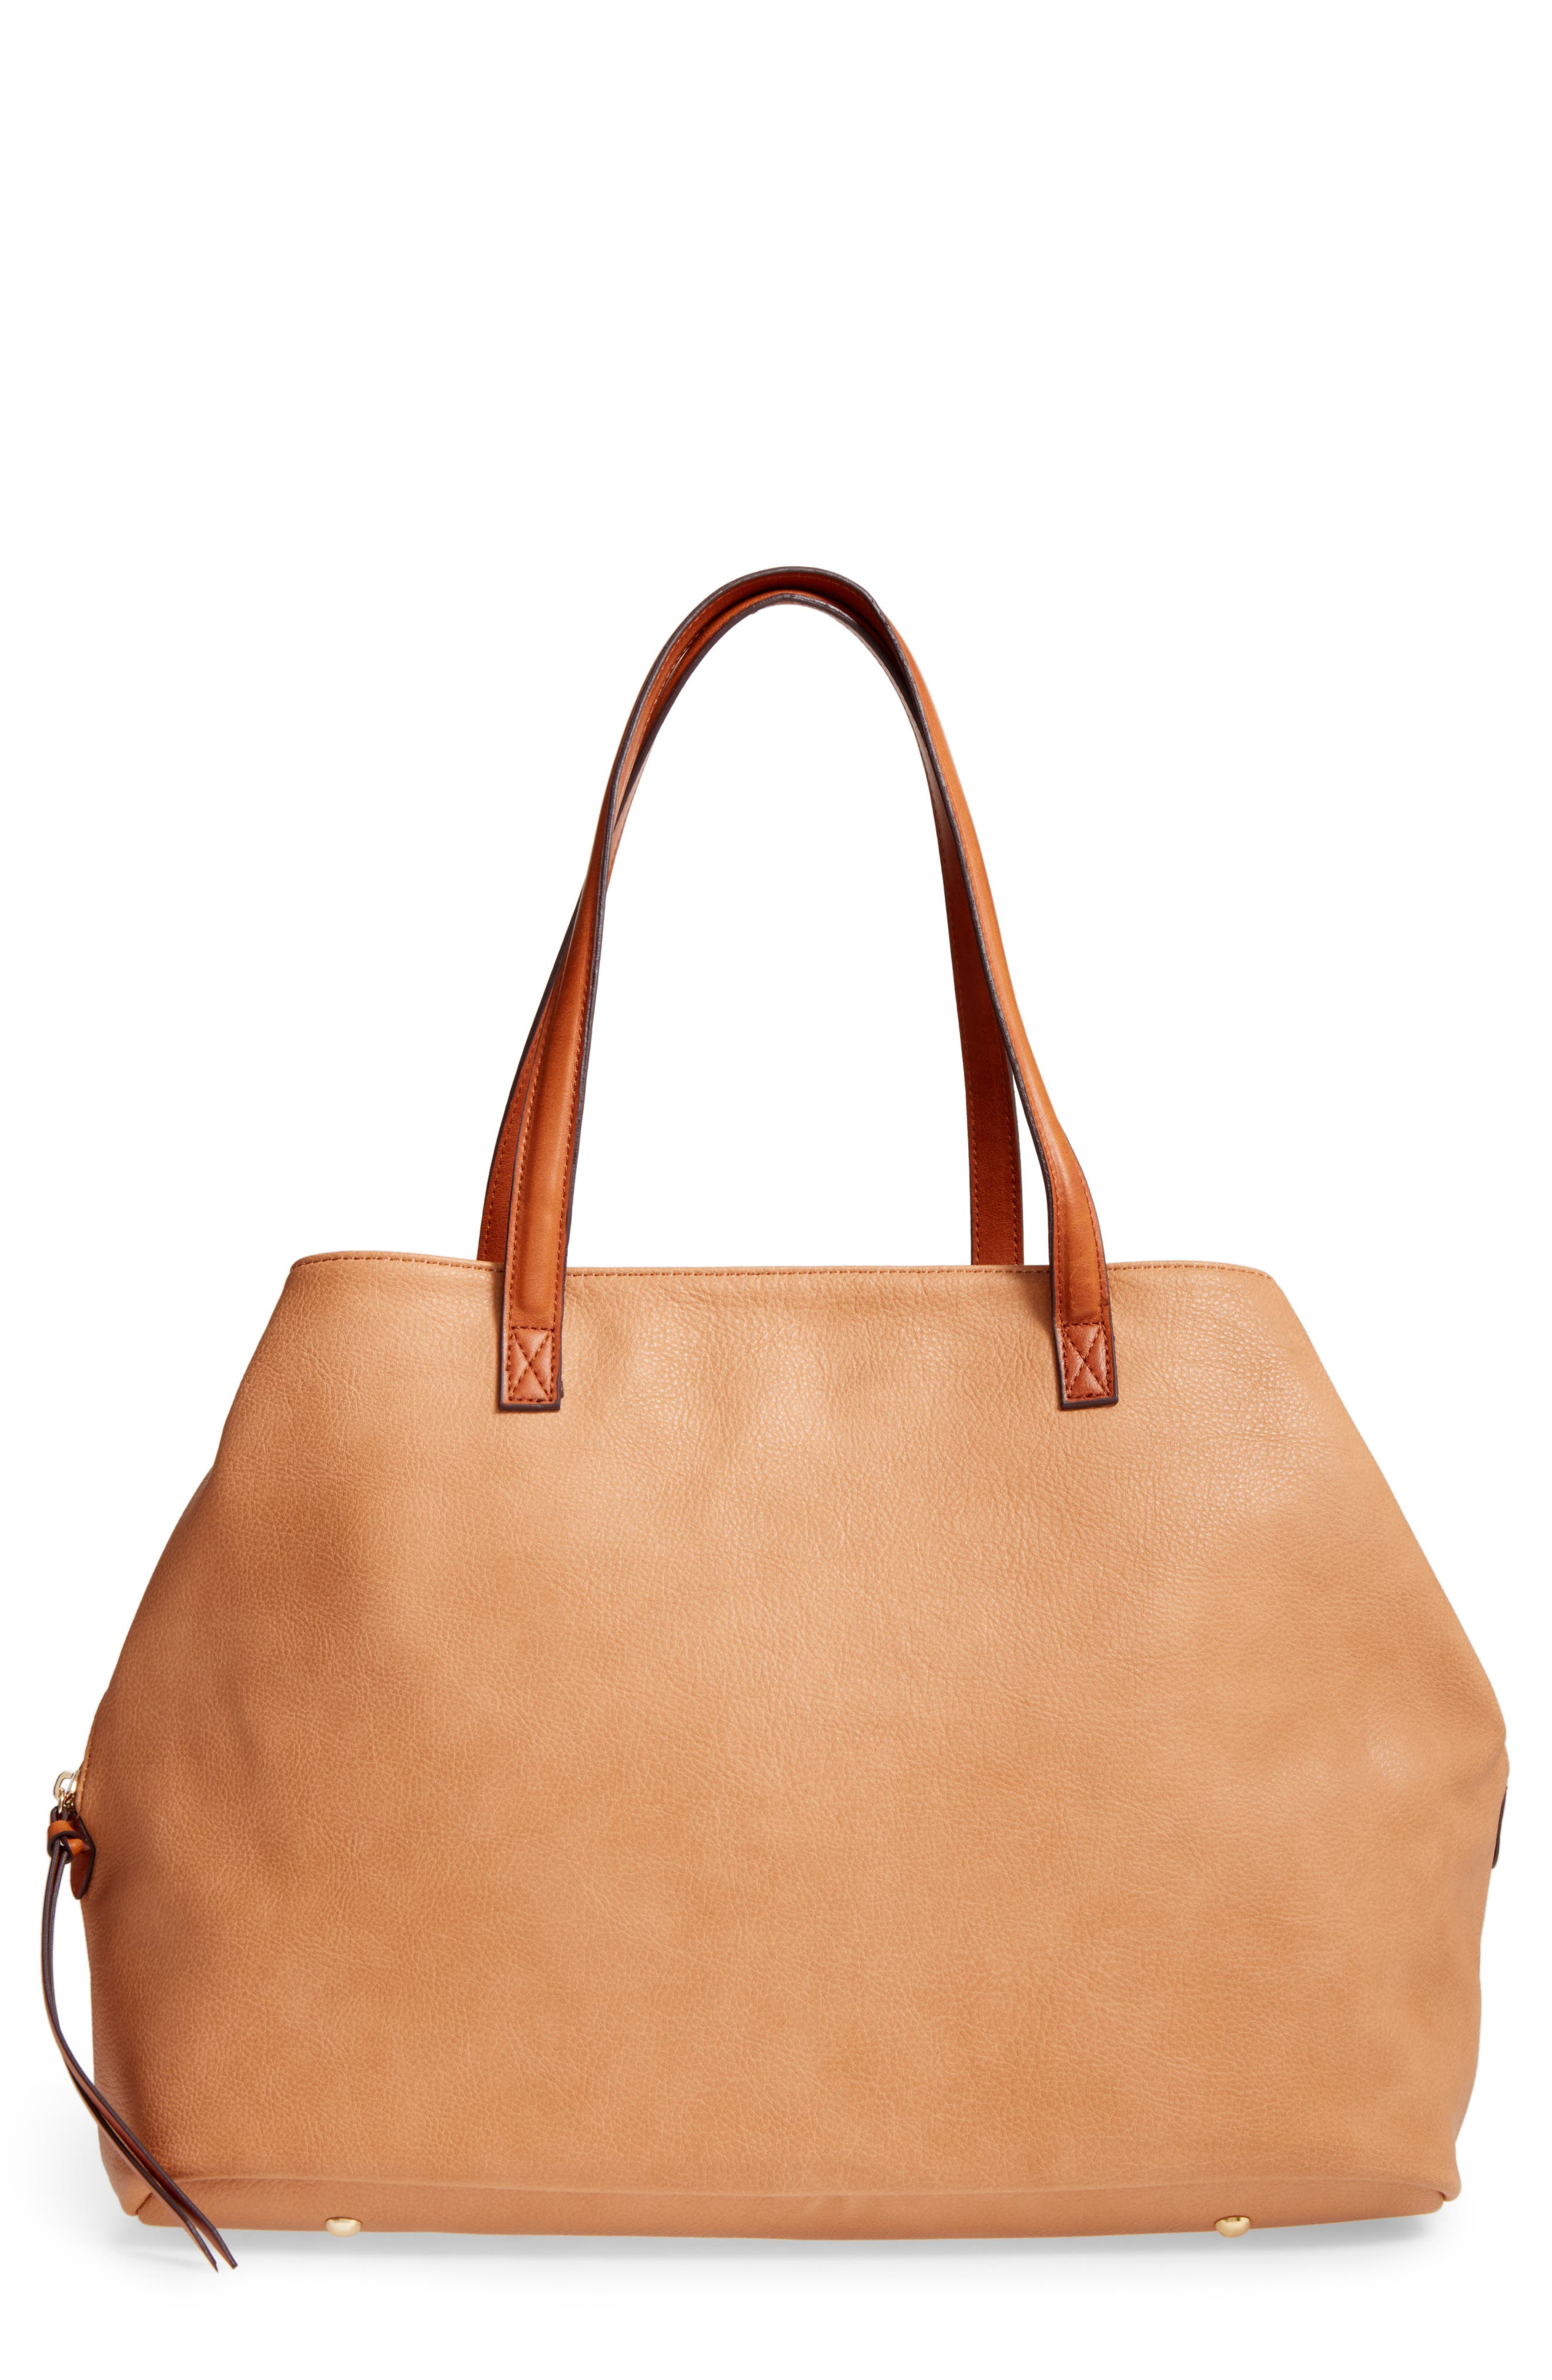 Millar Faux Leather Tote,                             Main thumbnail 1, color,                             Camel